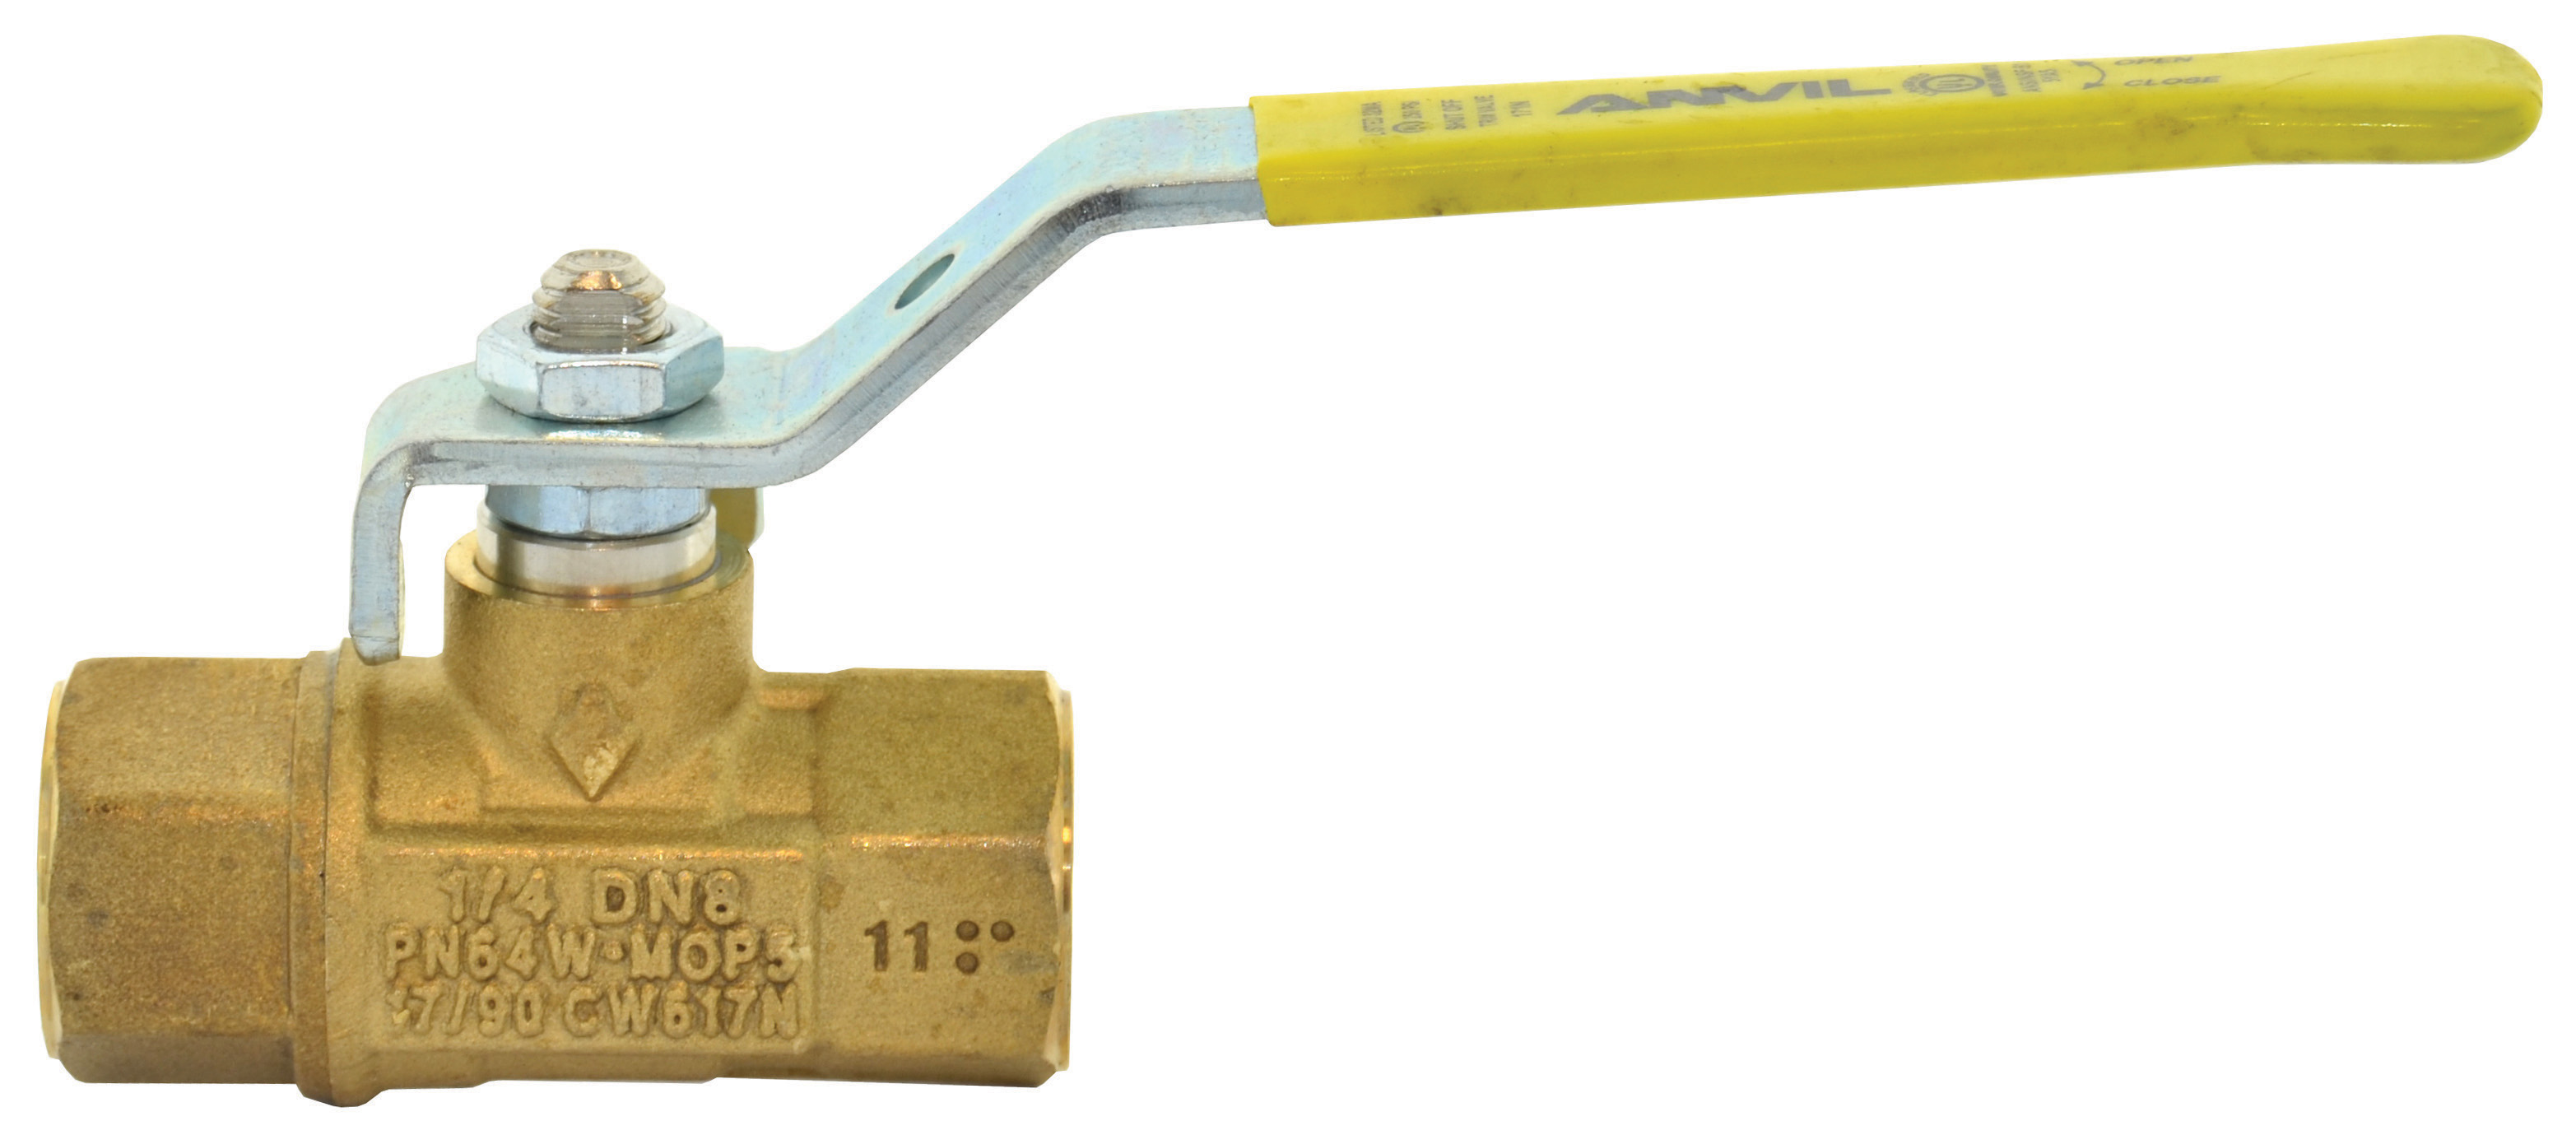 1 Inch Ball Valve With Two Piece Body Premium Forged Brass